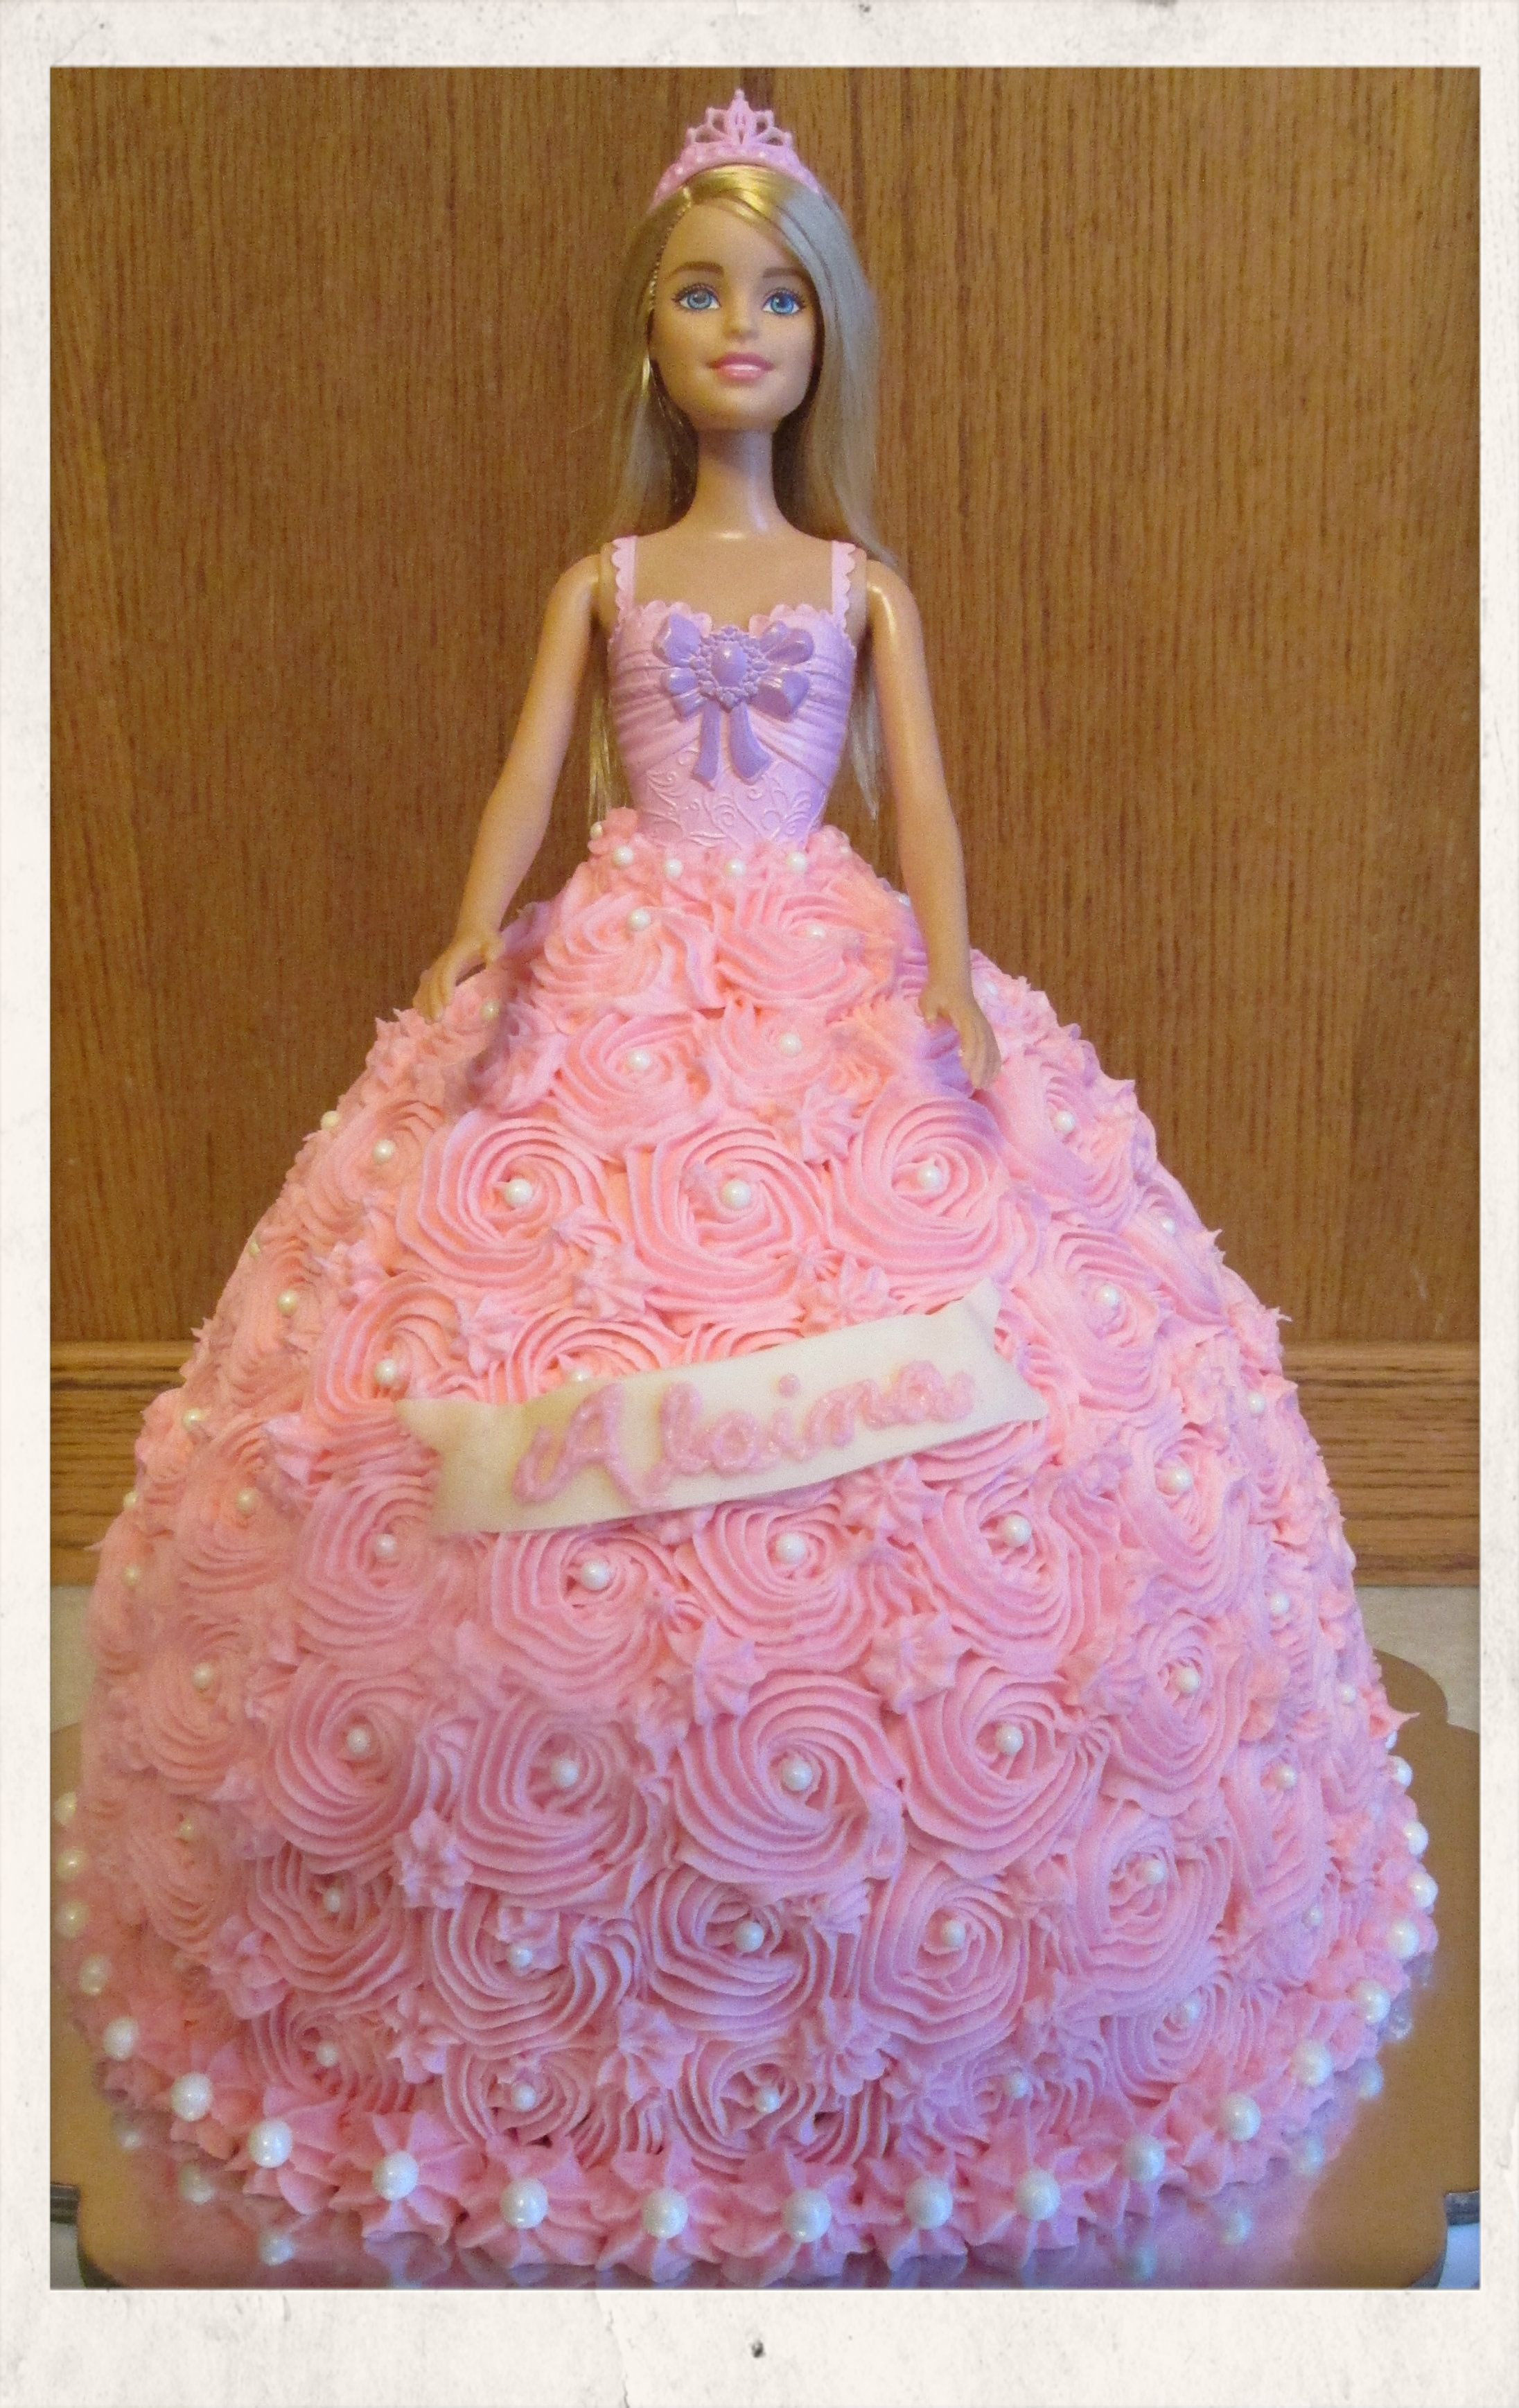 Barbie Doll Princess Cake All Buttercream Cakes And Cookies Made